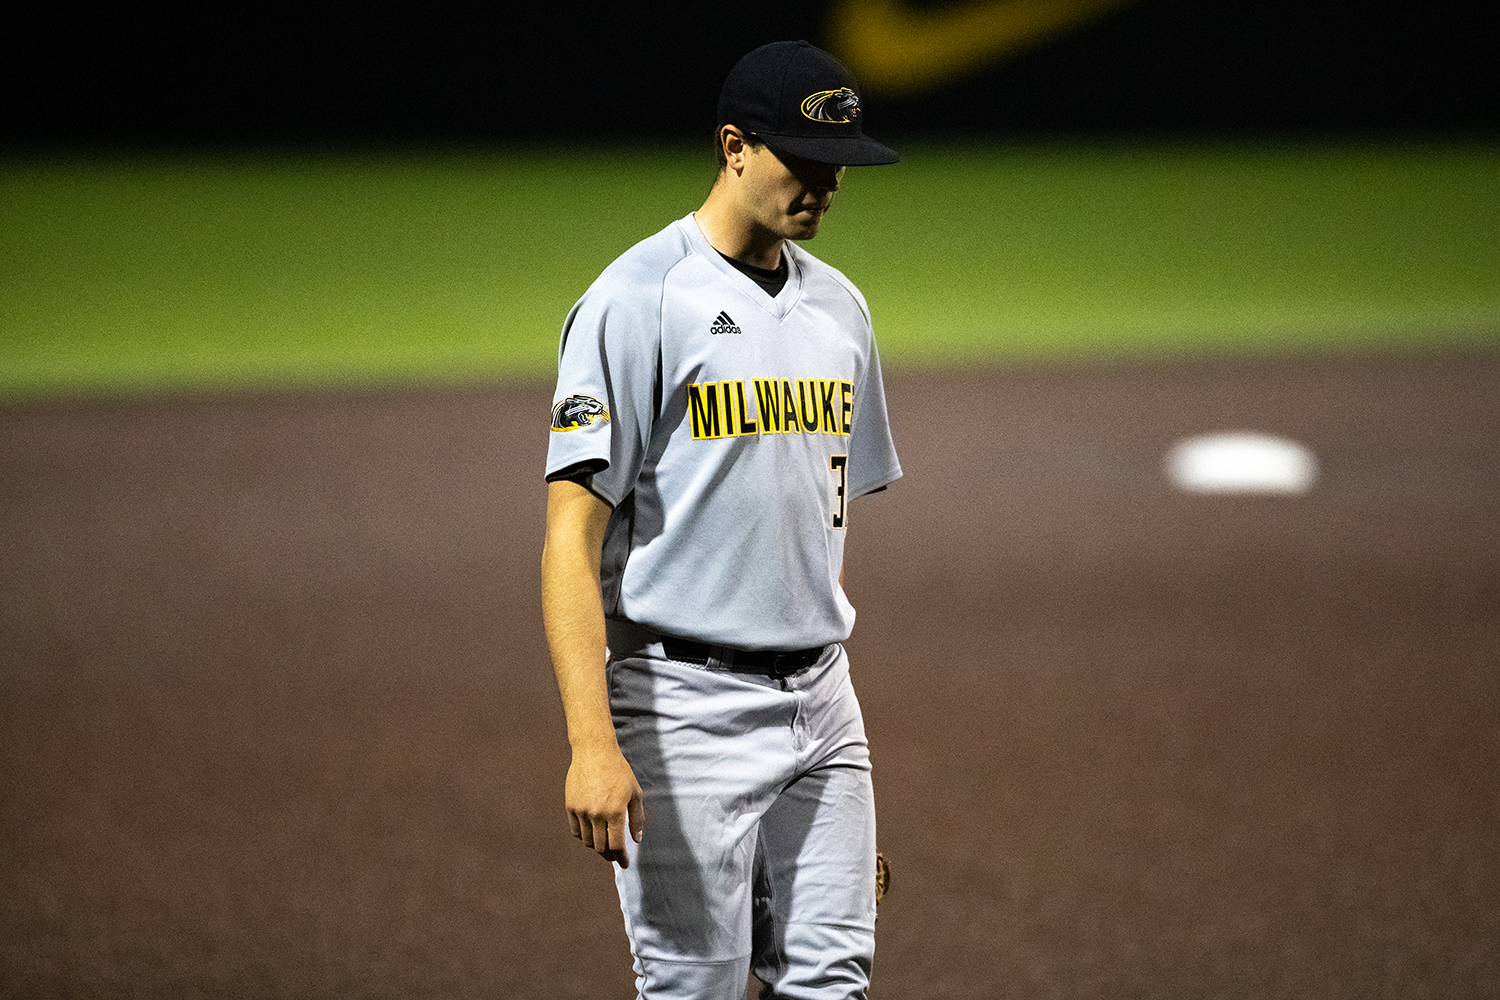 Milwaukee+pitcher+Alex+Mcintosh+after+a+game+winning+homerun+in+the+11th+inning+after+the+baseball+game+against+Iowa+at+Duane+Banks+Field+on+Tuesday%2C+April+23%2C+2019.+The+Hawkeyes+defeated+the+Panthers+5-4.